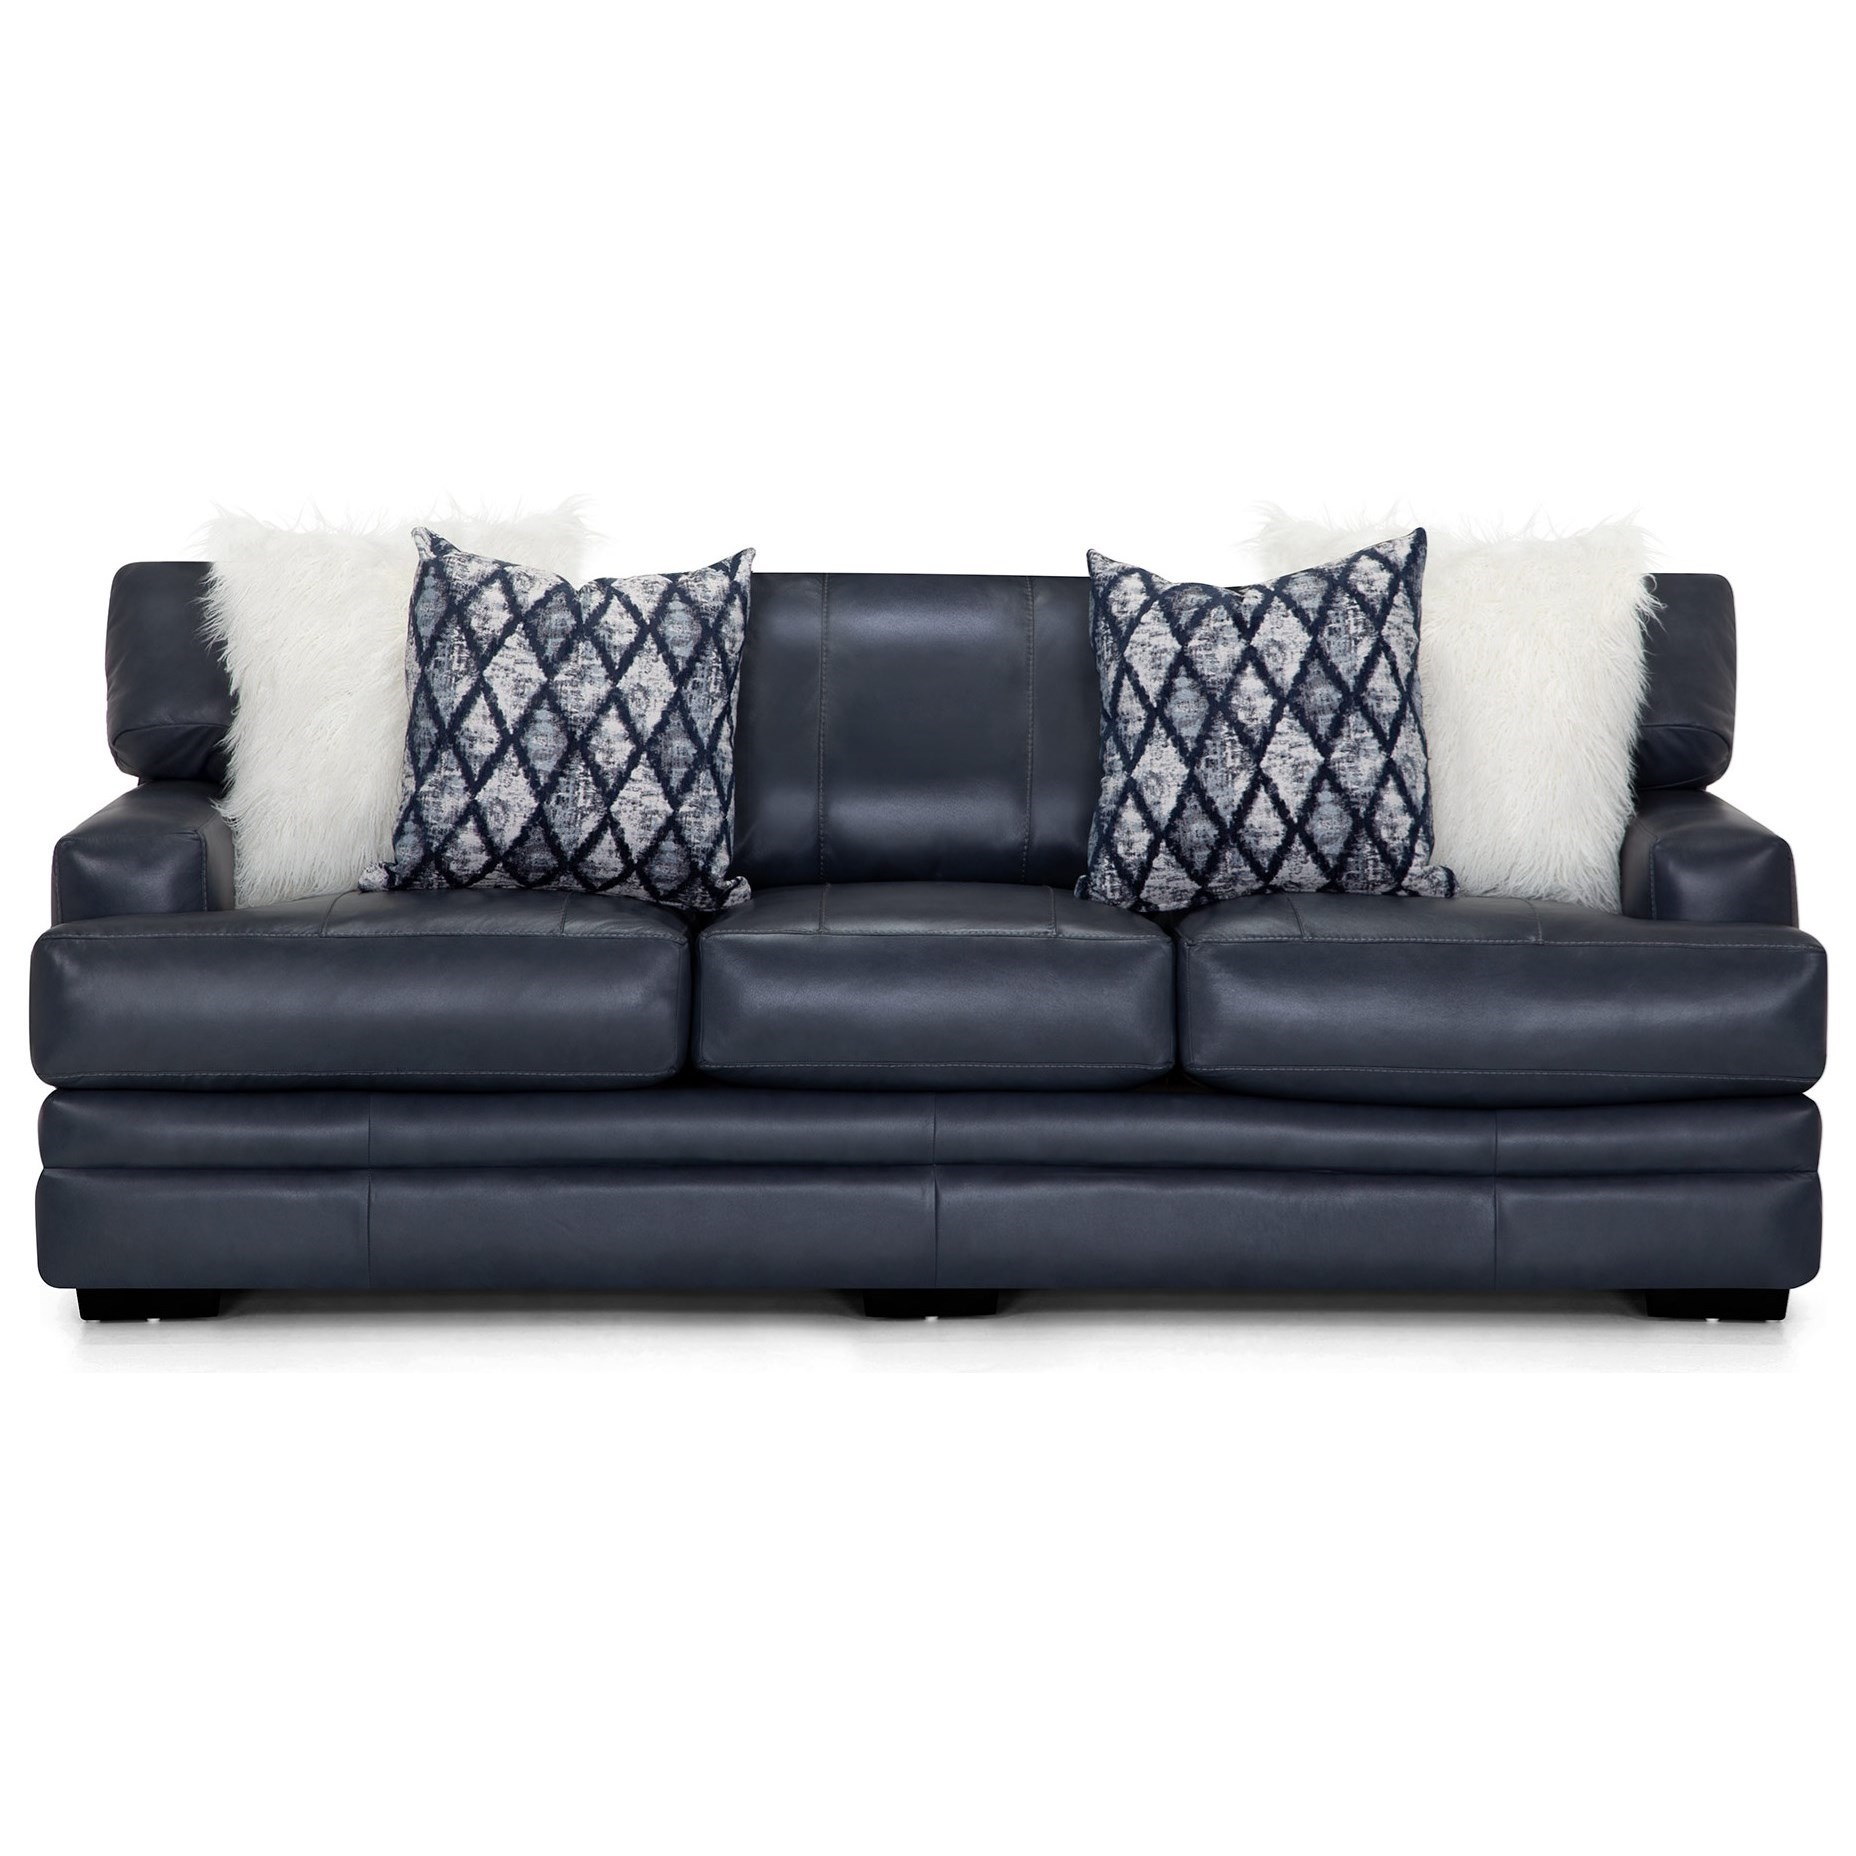 973 Sofa by Franklin at Furniture and ApplianceMart